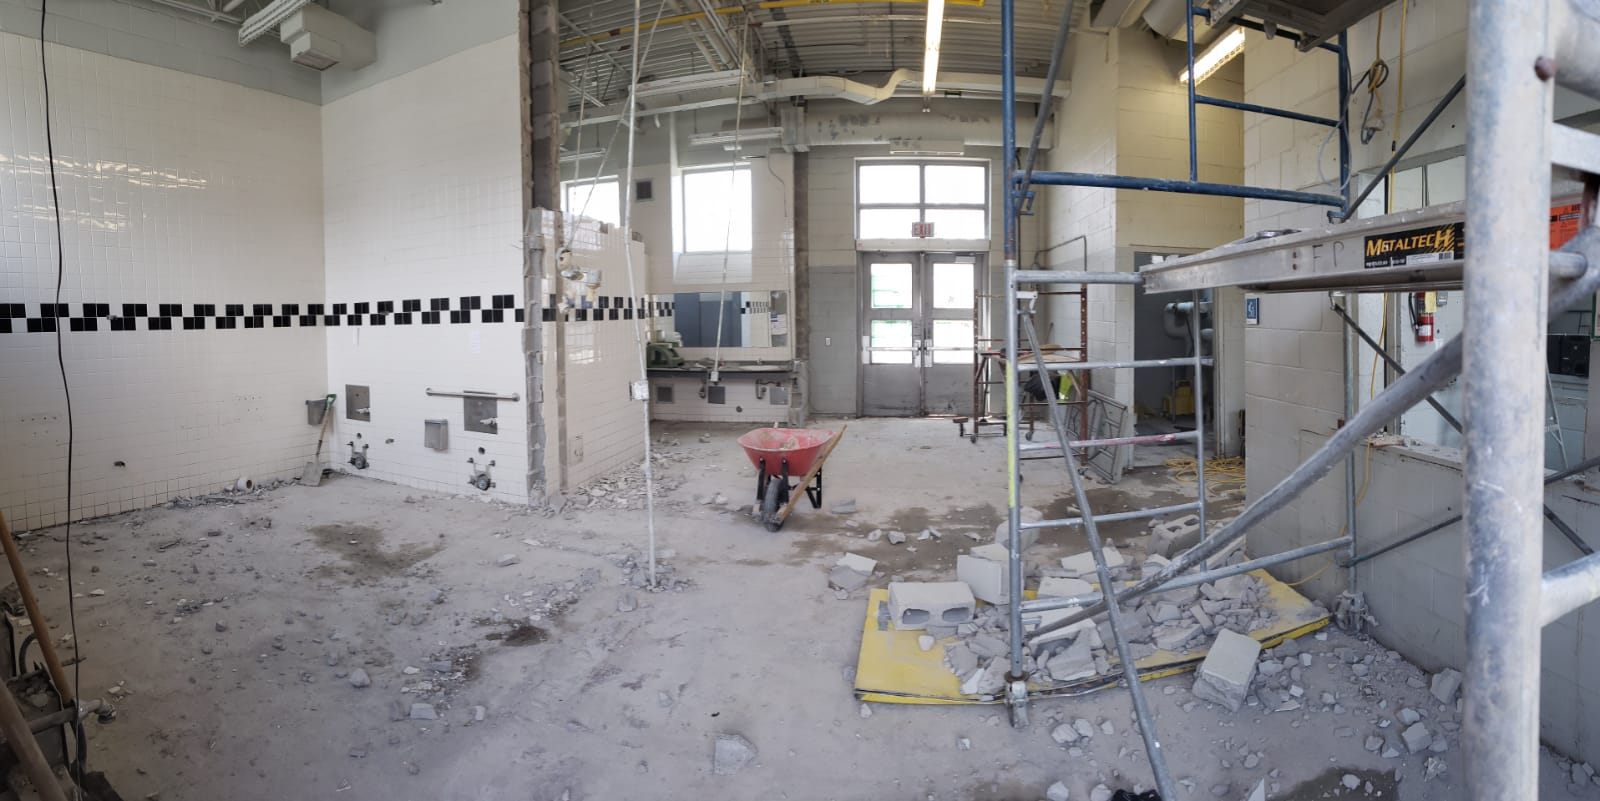 The photo shows the demolition in process inside the clubhouse, where the former washrooms and lobby were located. On the left, the tiled washroom walls are partially removed. On the right, scaffolding is being put up to aid in the demolition.